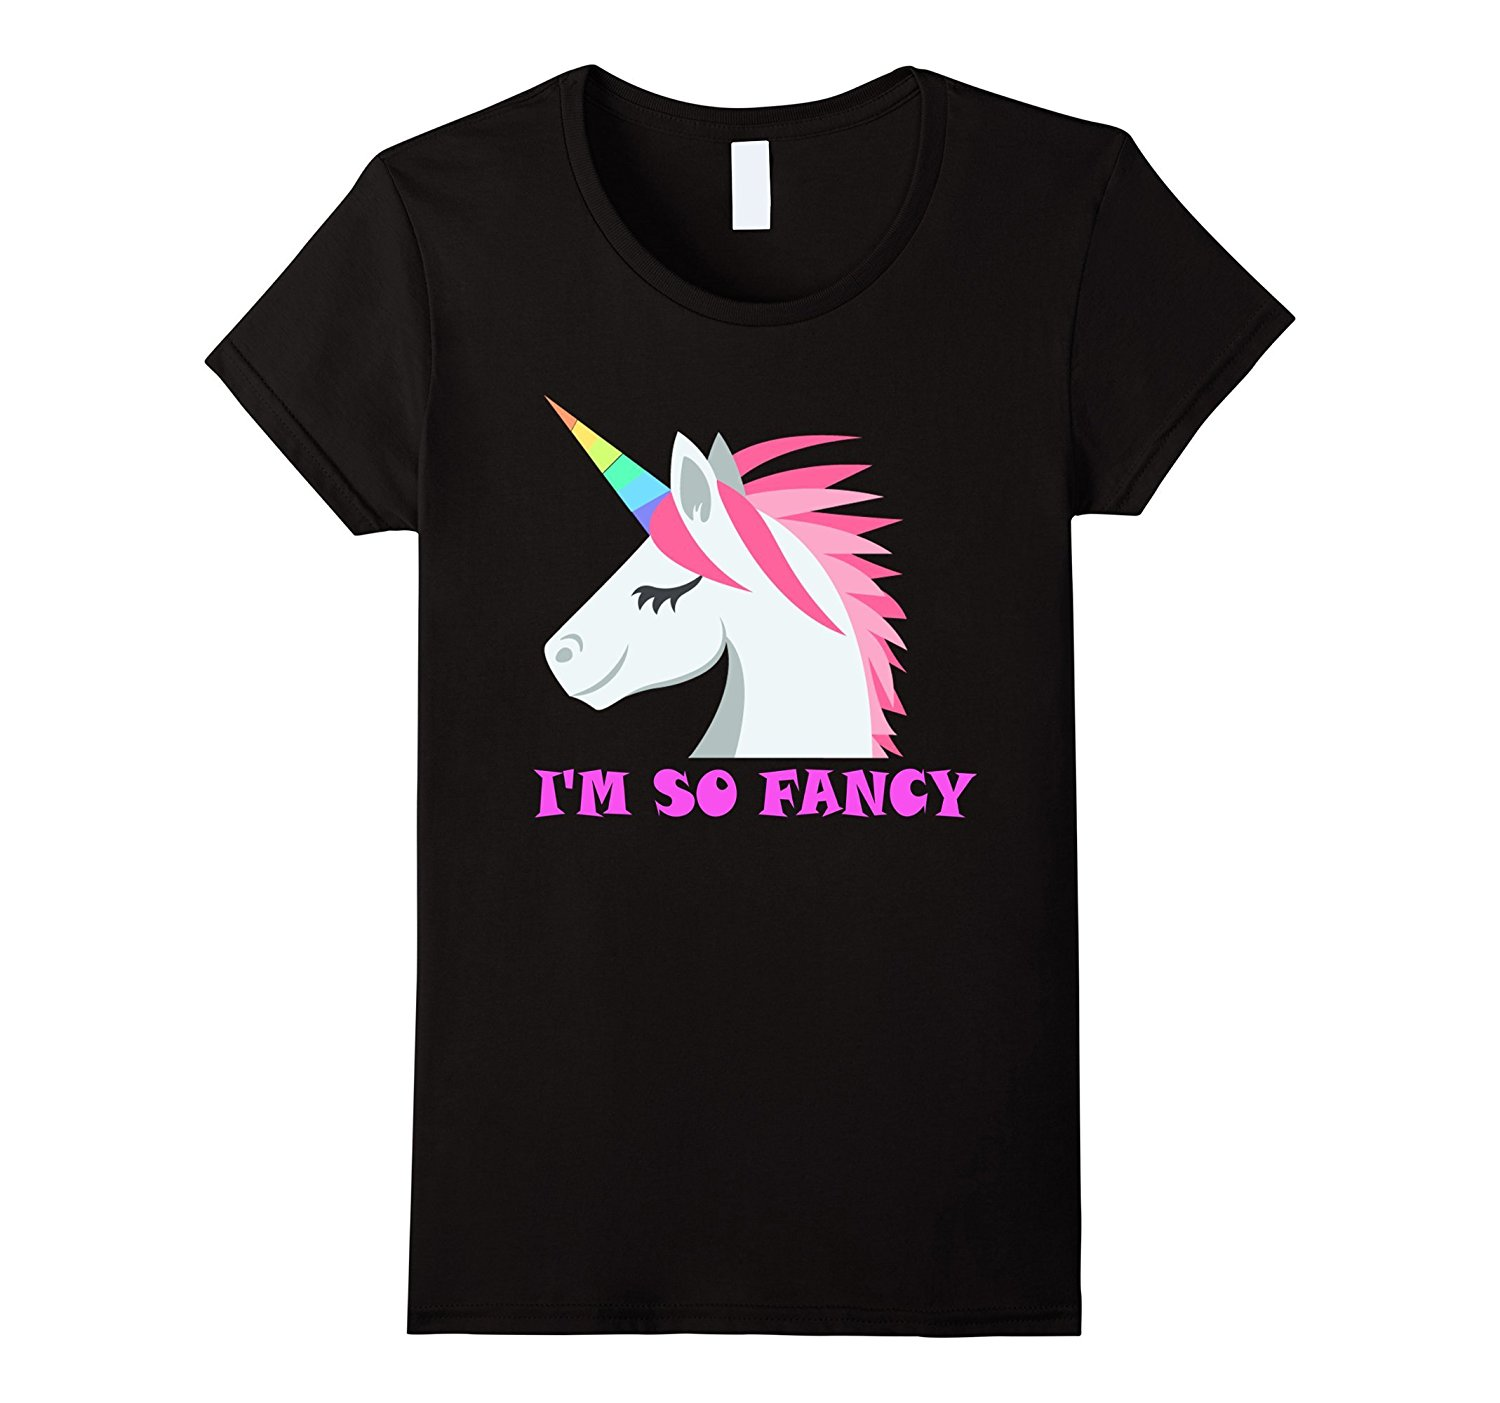 IM SO FANCY UNICORN T SHIRT UNICORN TEE SQUAD New Fashion WomenS Short Sleeve Girl T-Shirt Hot Sale 2017 Hot Summer ...